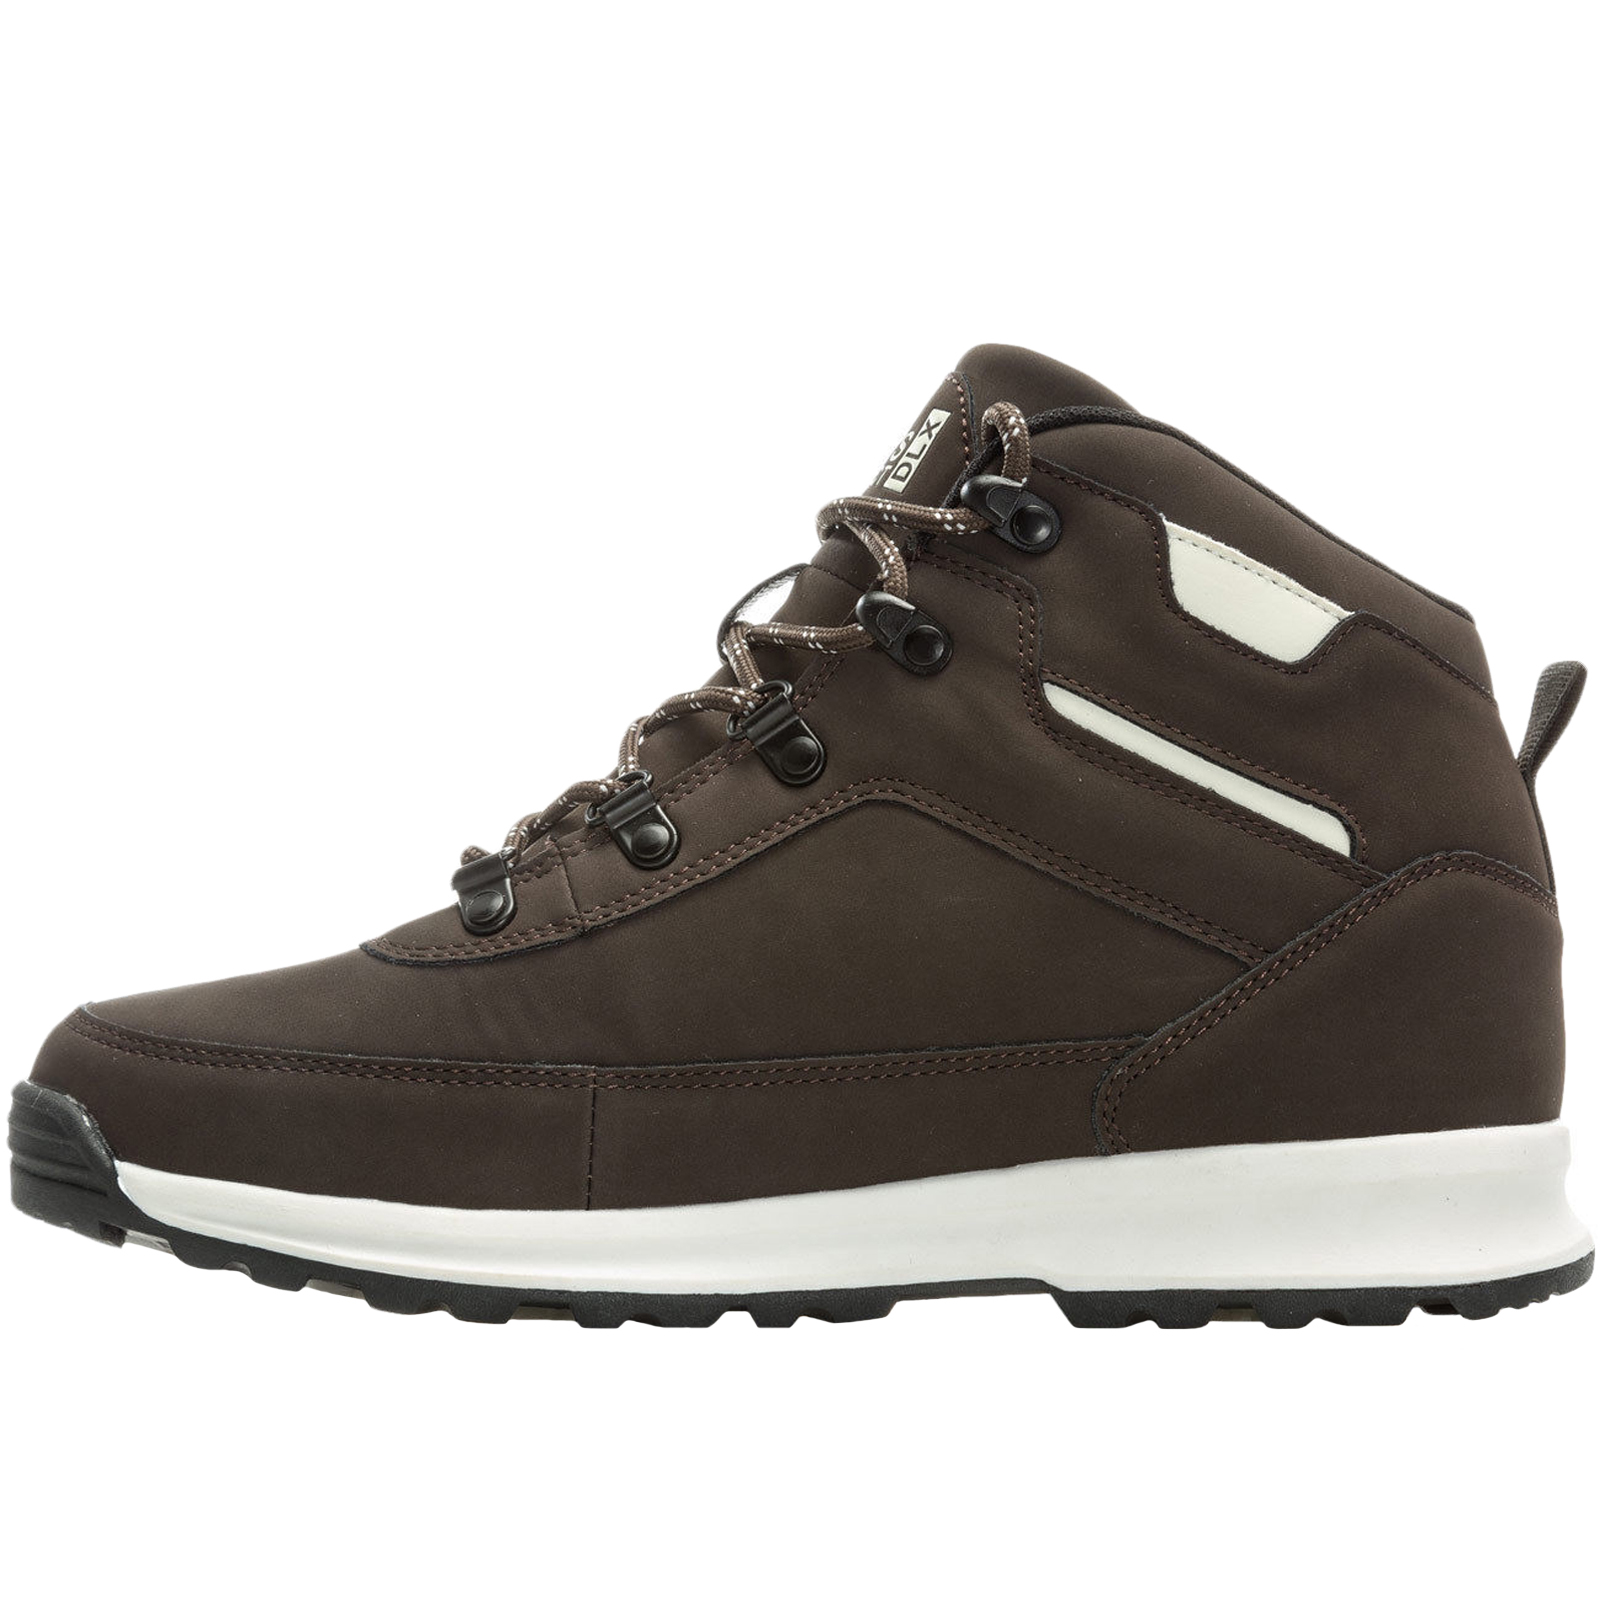 Henleys-Mens-Travis-Lace-Up-Casual-High-Top-Outdoor-Hiking-Walking-Boots-Shoes thumbnail 7